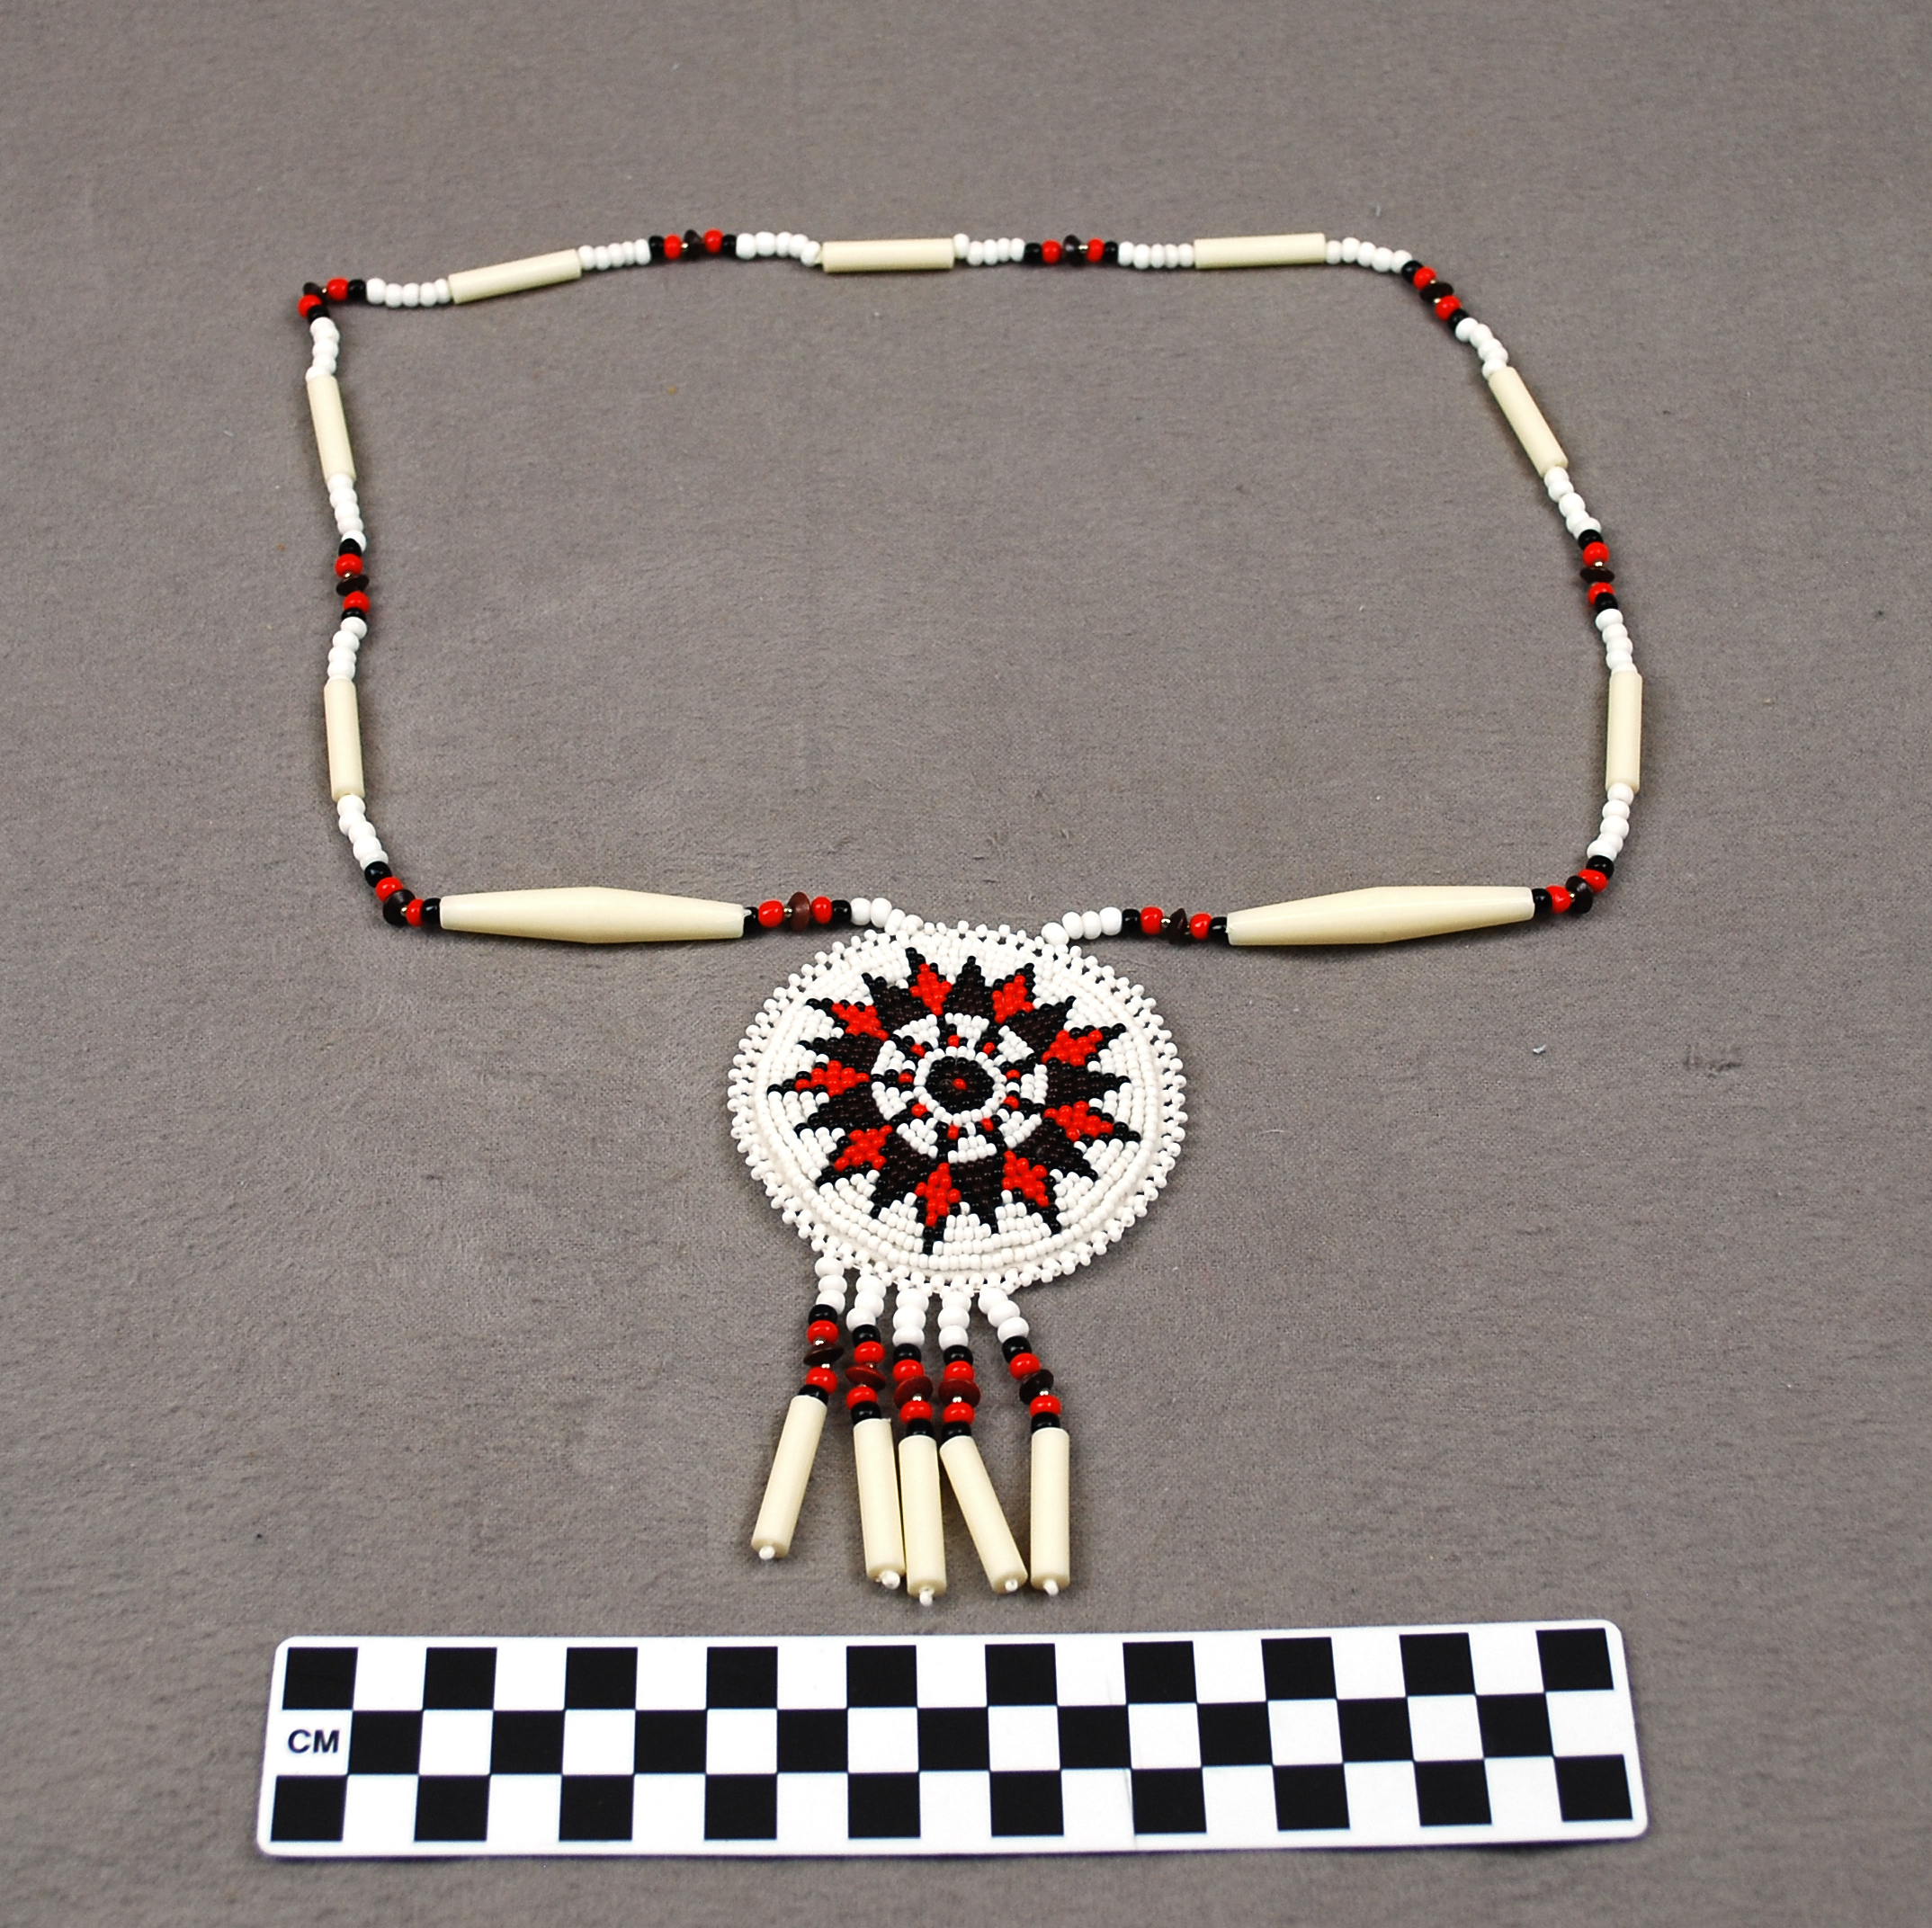 Object: Necklace | UTSA Institute Of Texan Cultures